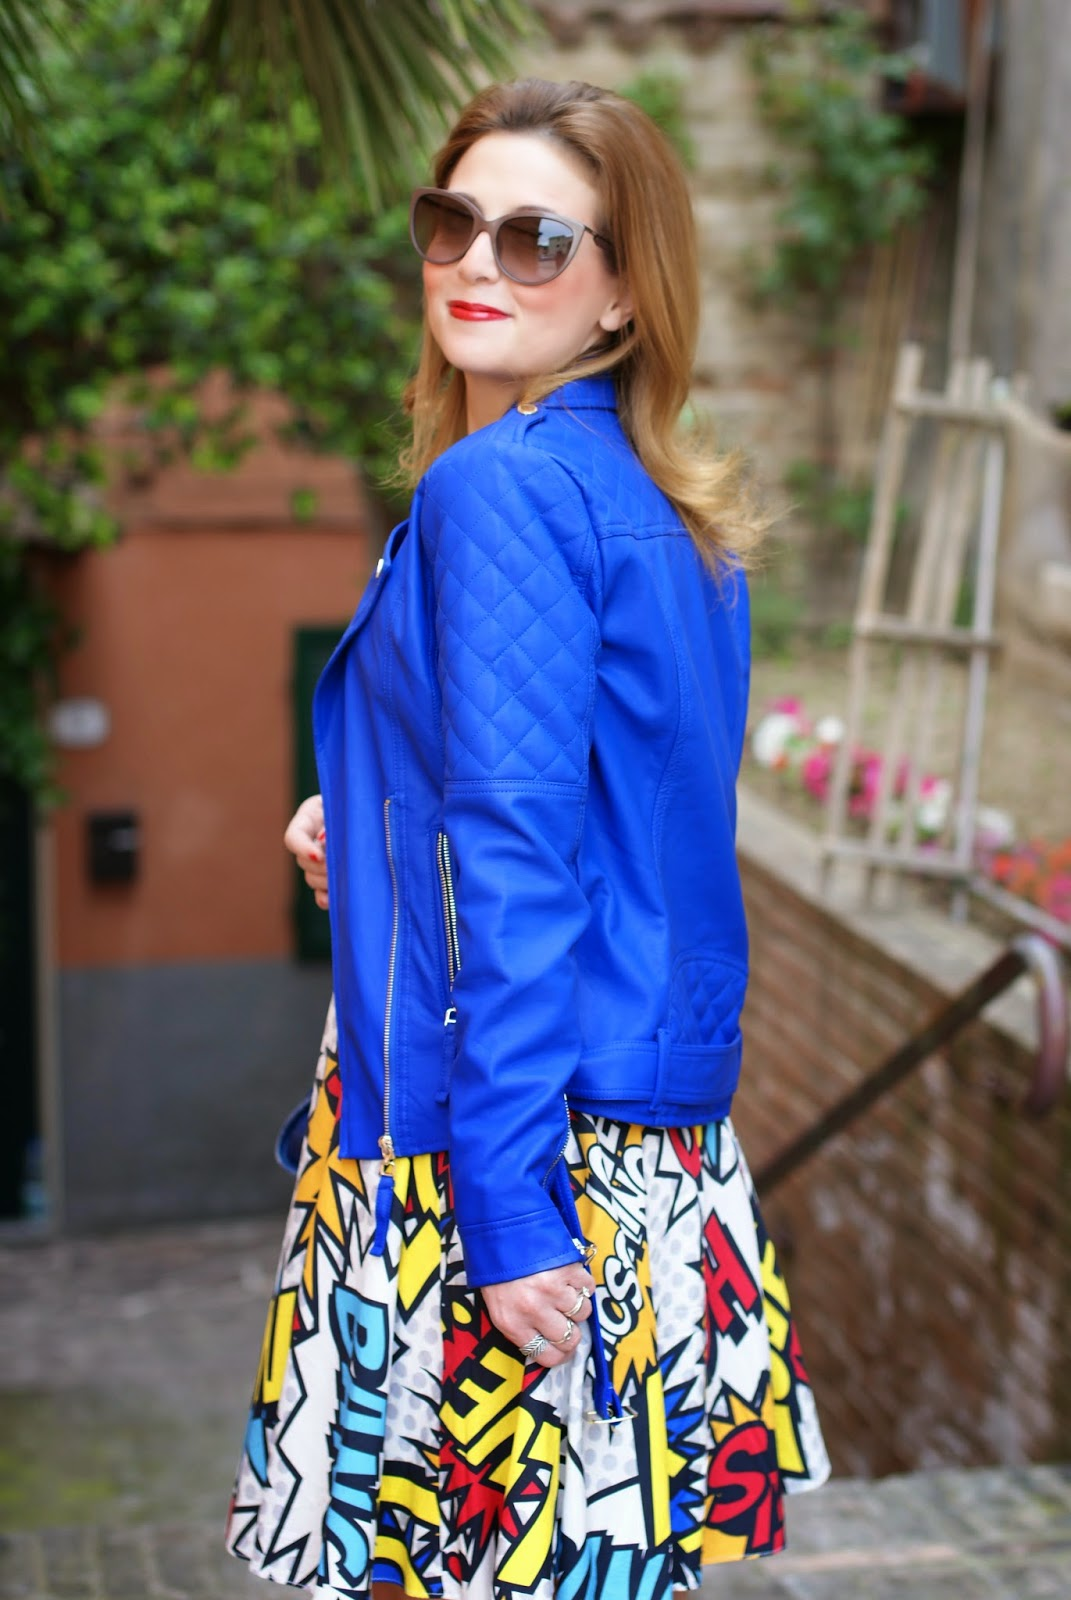 Morgan blue biker jacket, Love Moschino comics dress, Balenciaga city blue, Fashion and Cookies, fashion blogger